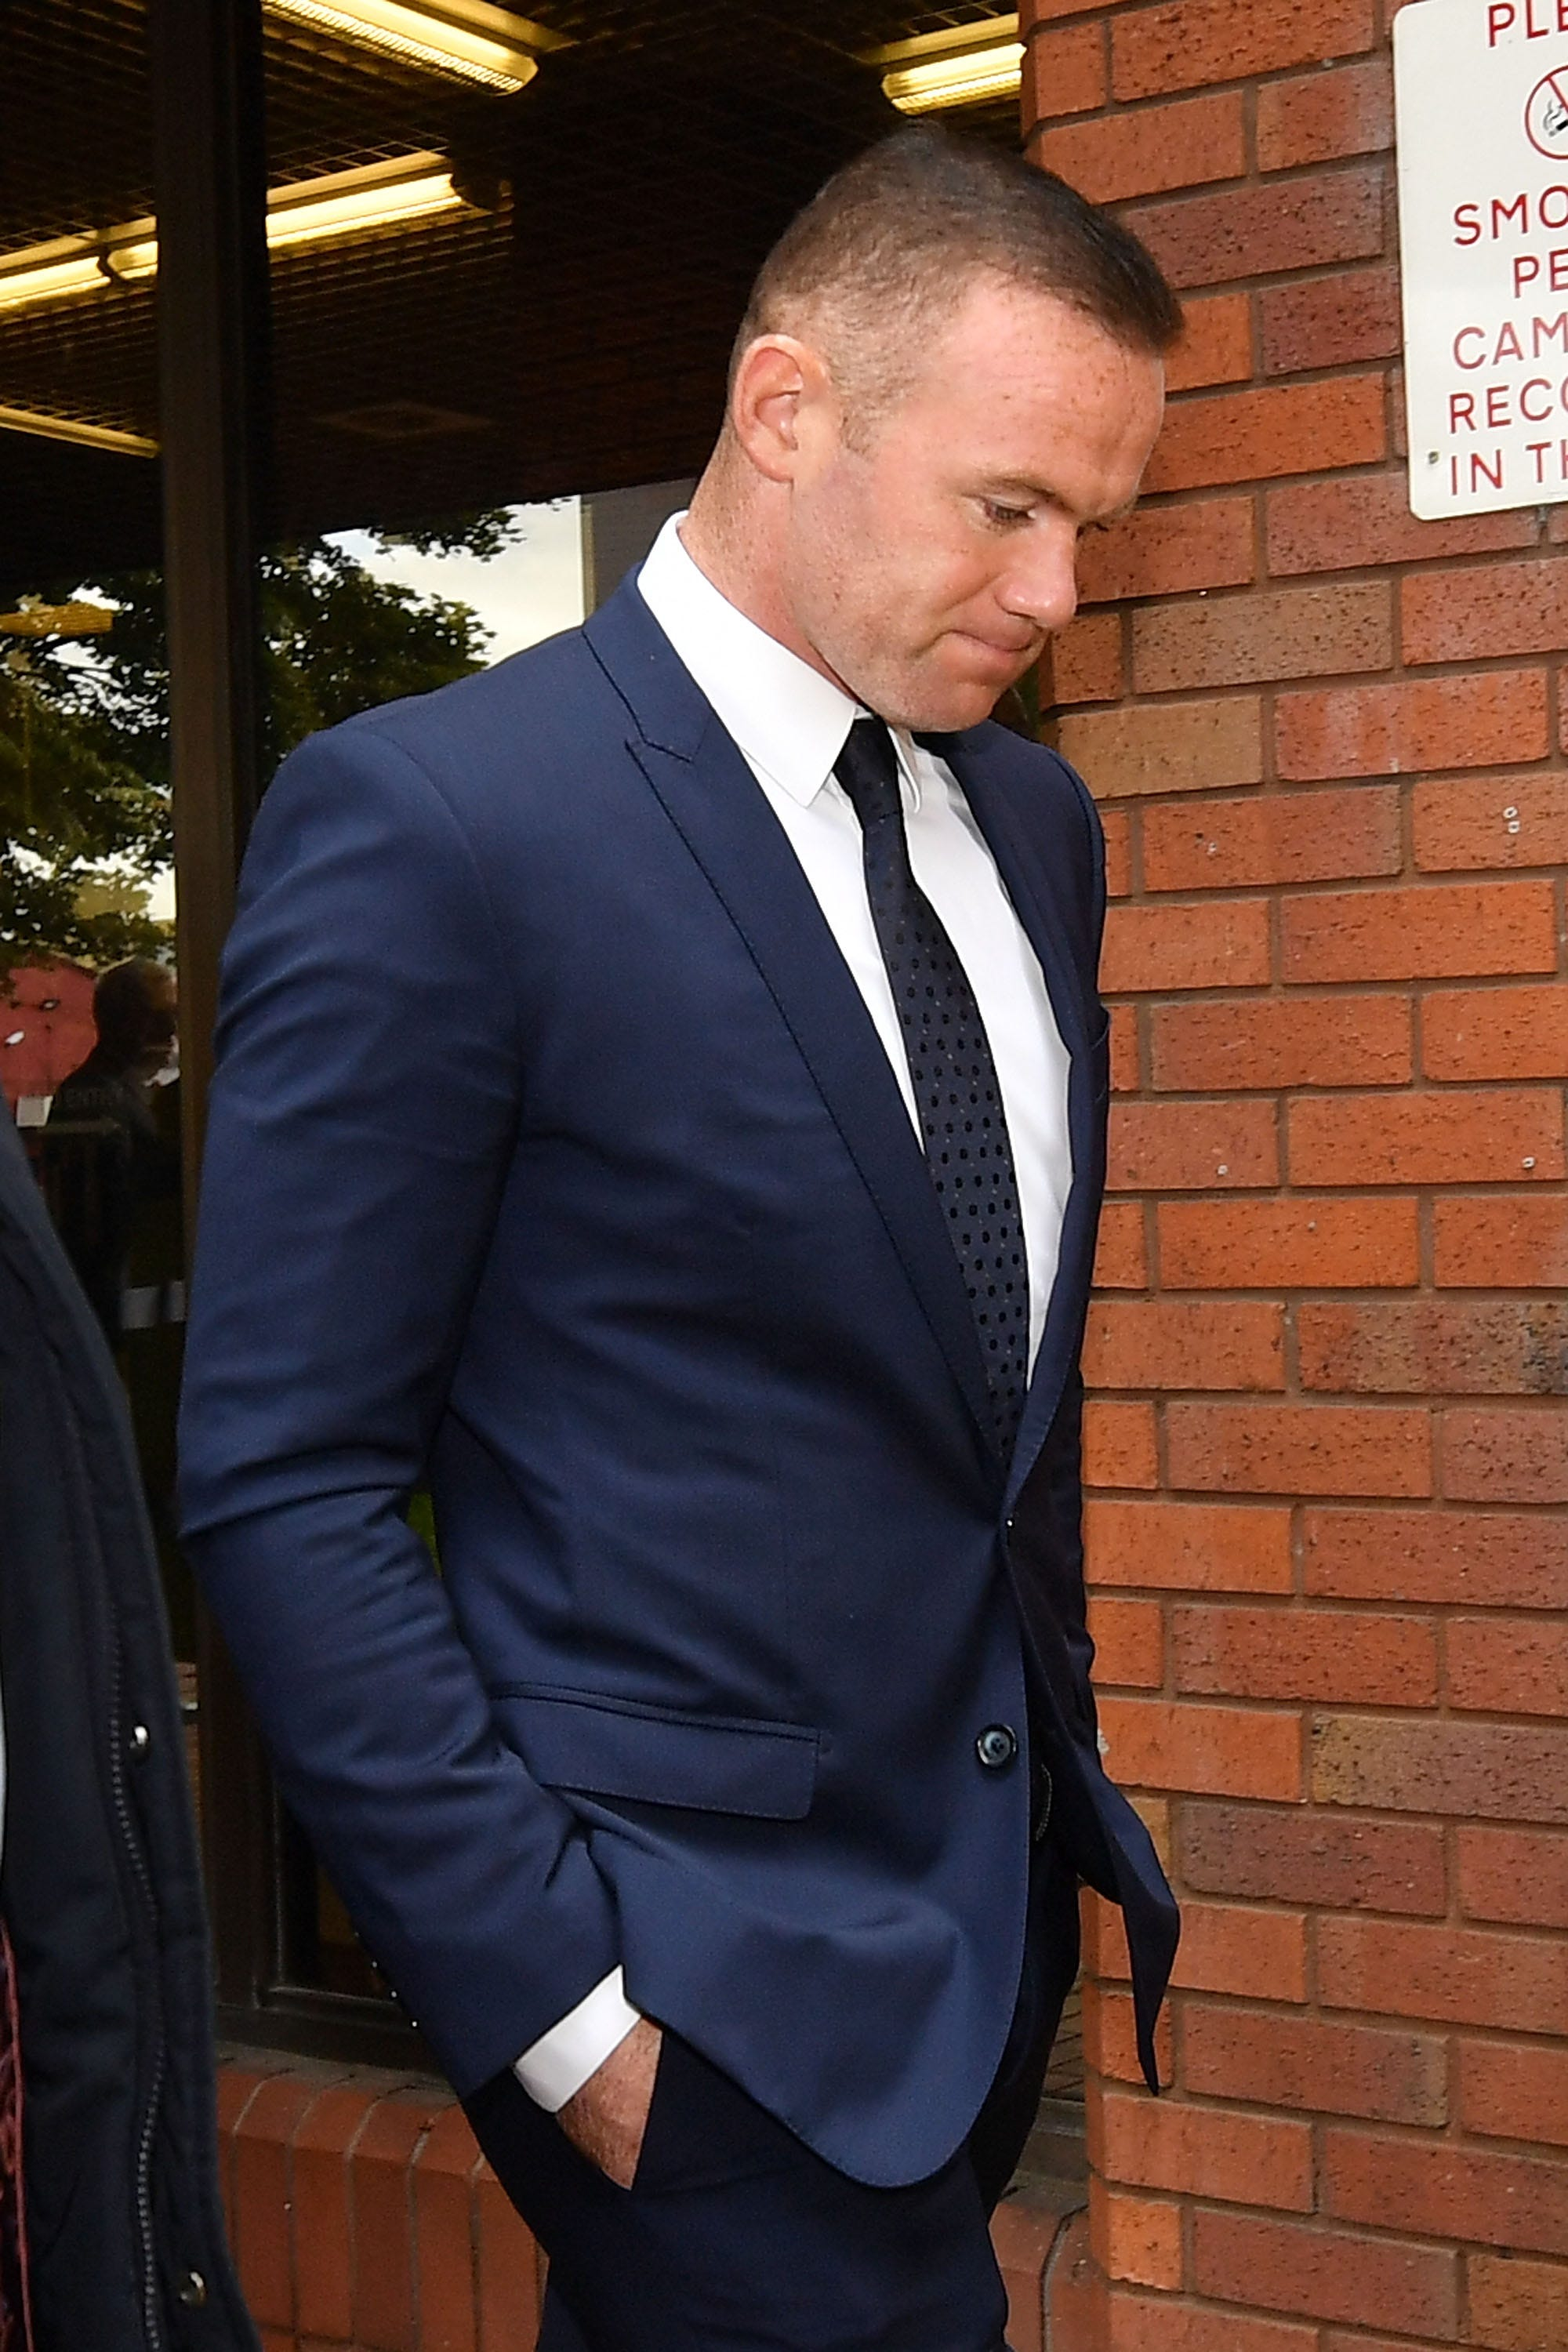 Wayne Rooney gets driving ban after pleading guilty to drunk driving